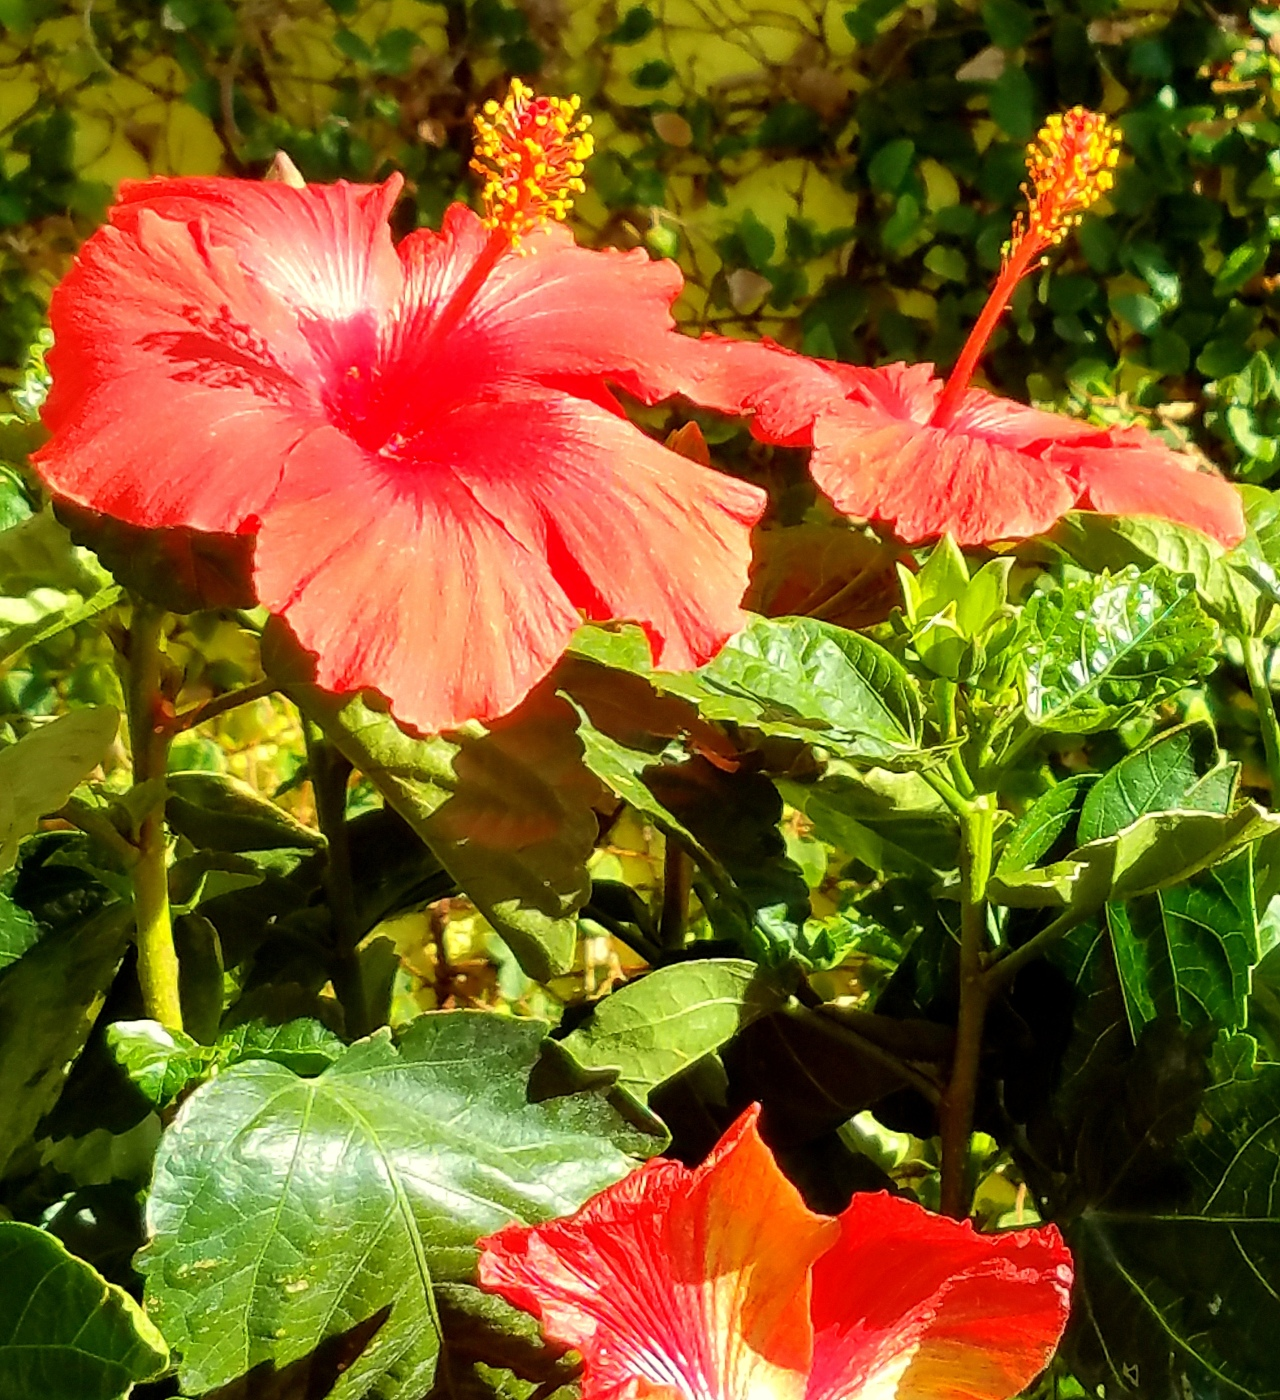 The friday file california flowers the chicago files i took this picture last month while in los angeles what struck me as interesting was the shadow the sun made of the little yellow anther i had to look izmirmasajfo